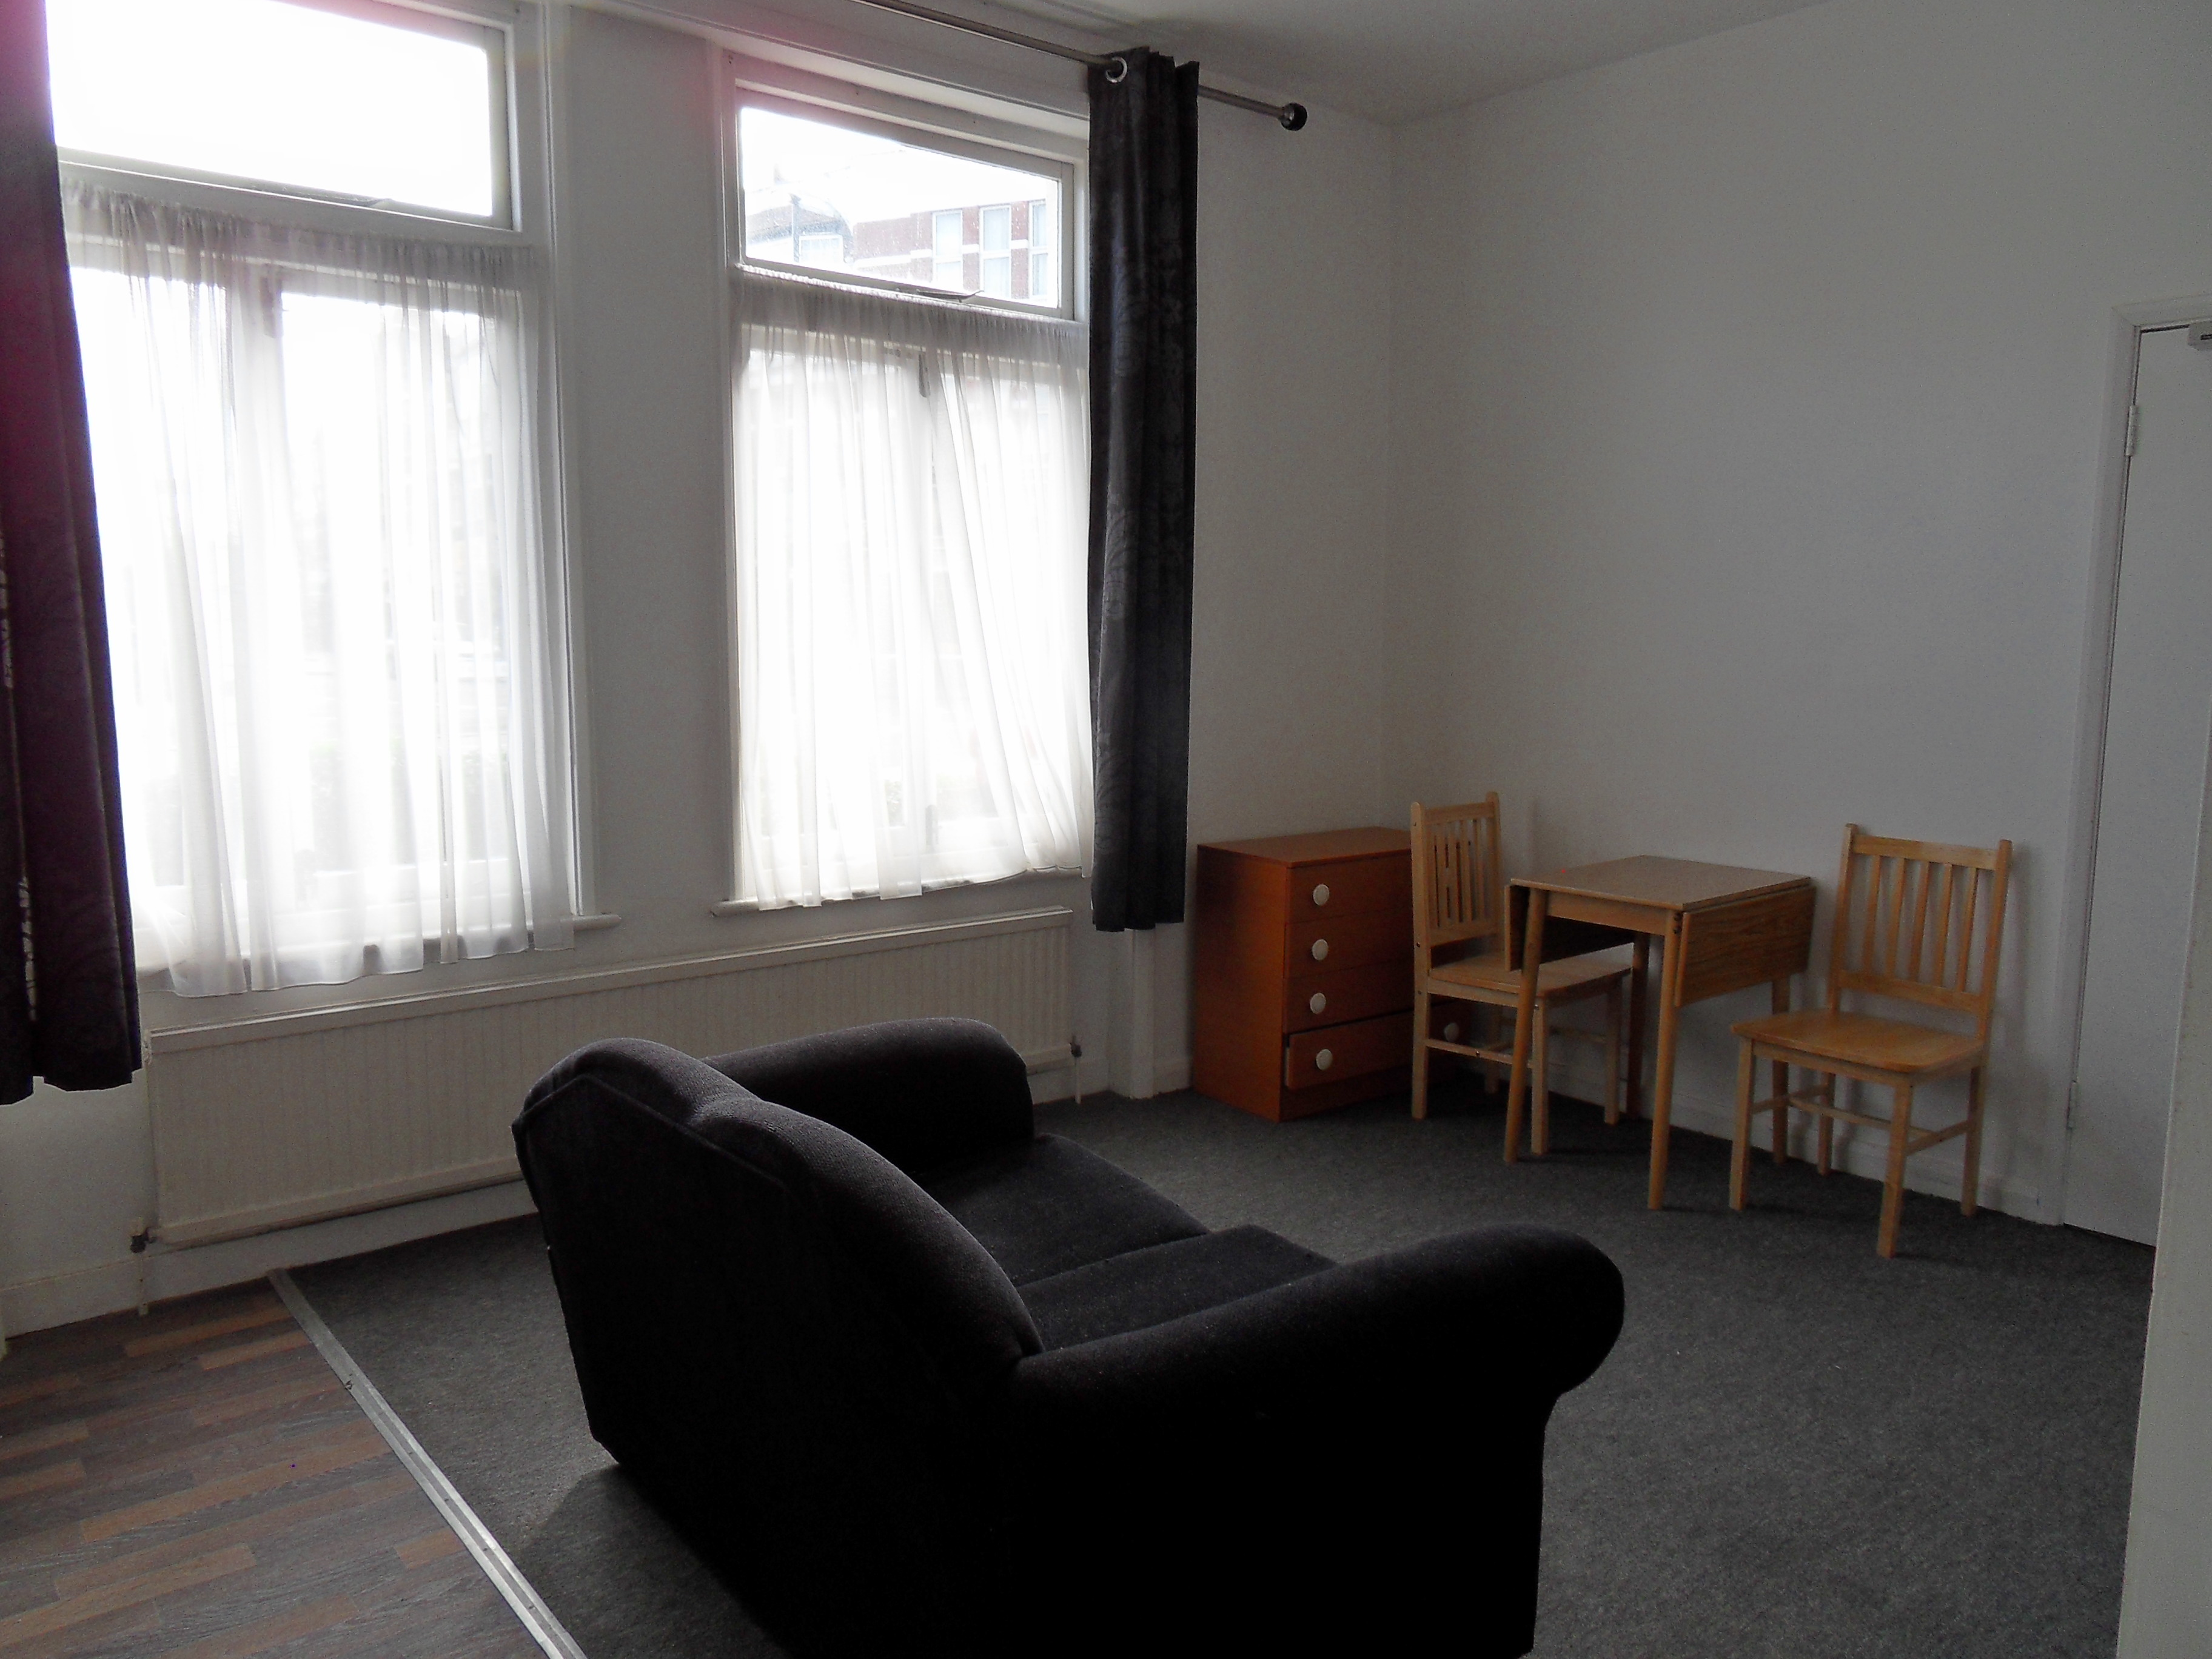 £750  Flat in Winchmore Hill N21, Studio bed, 1 bath,